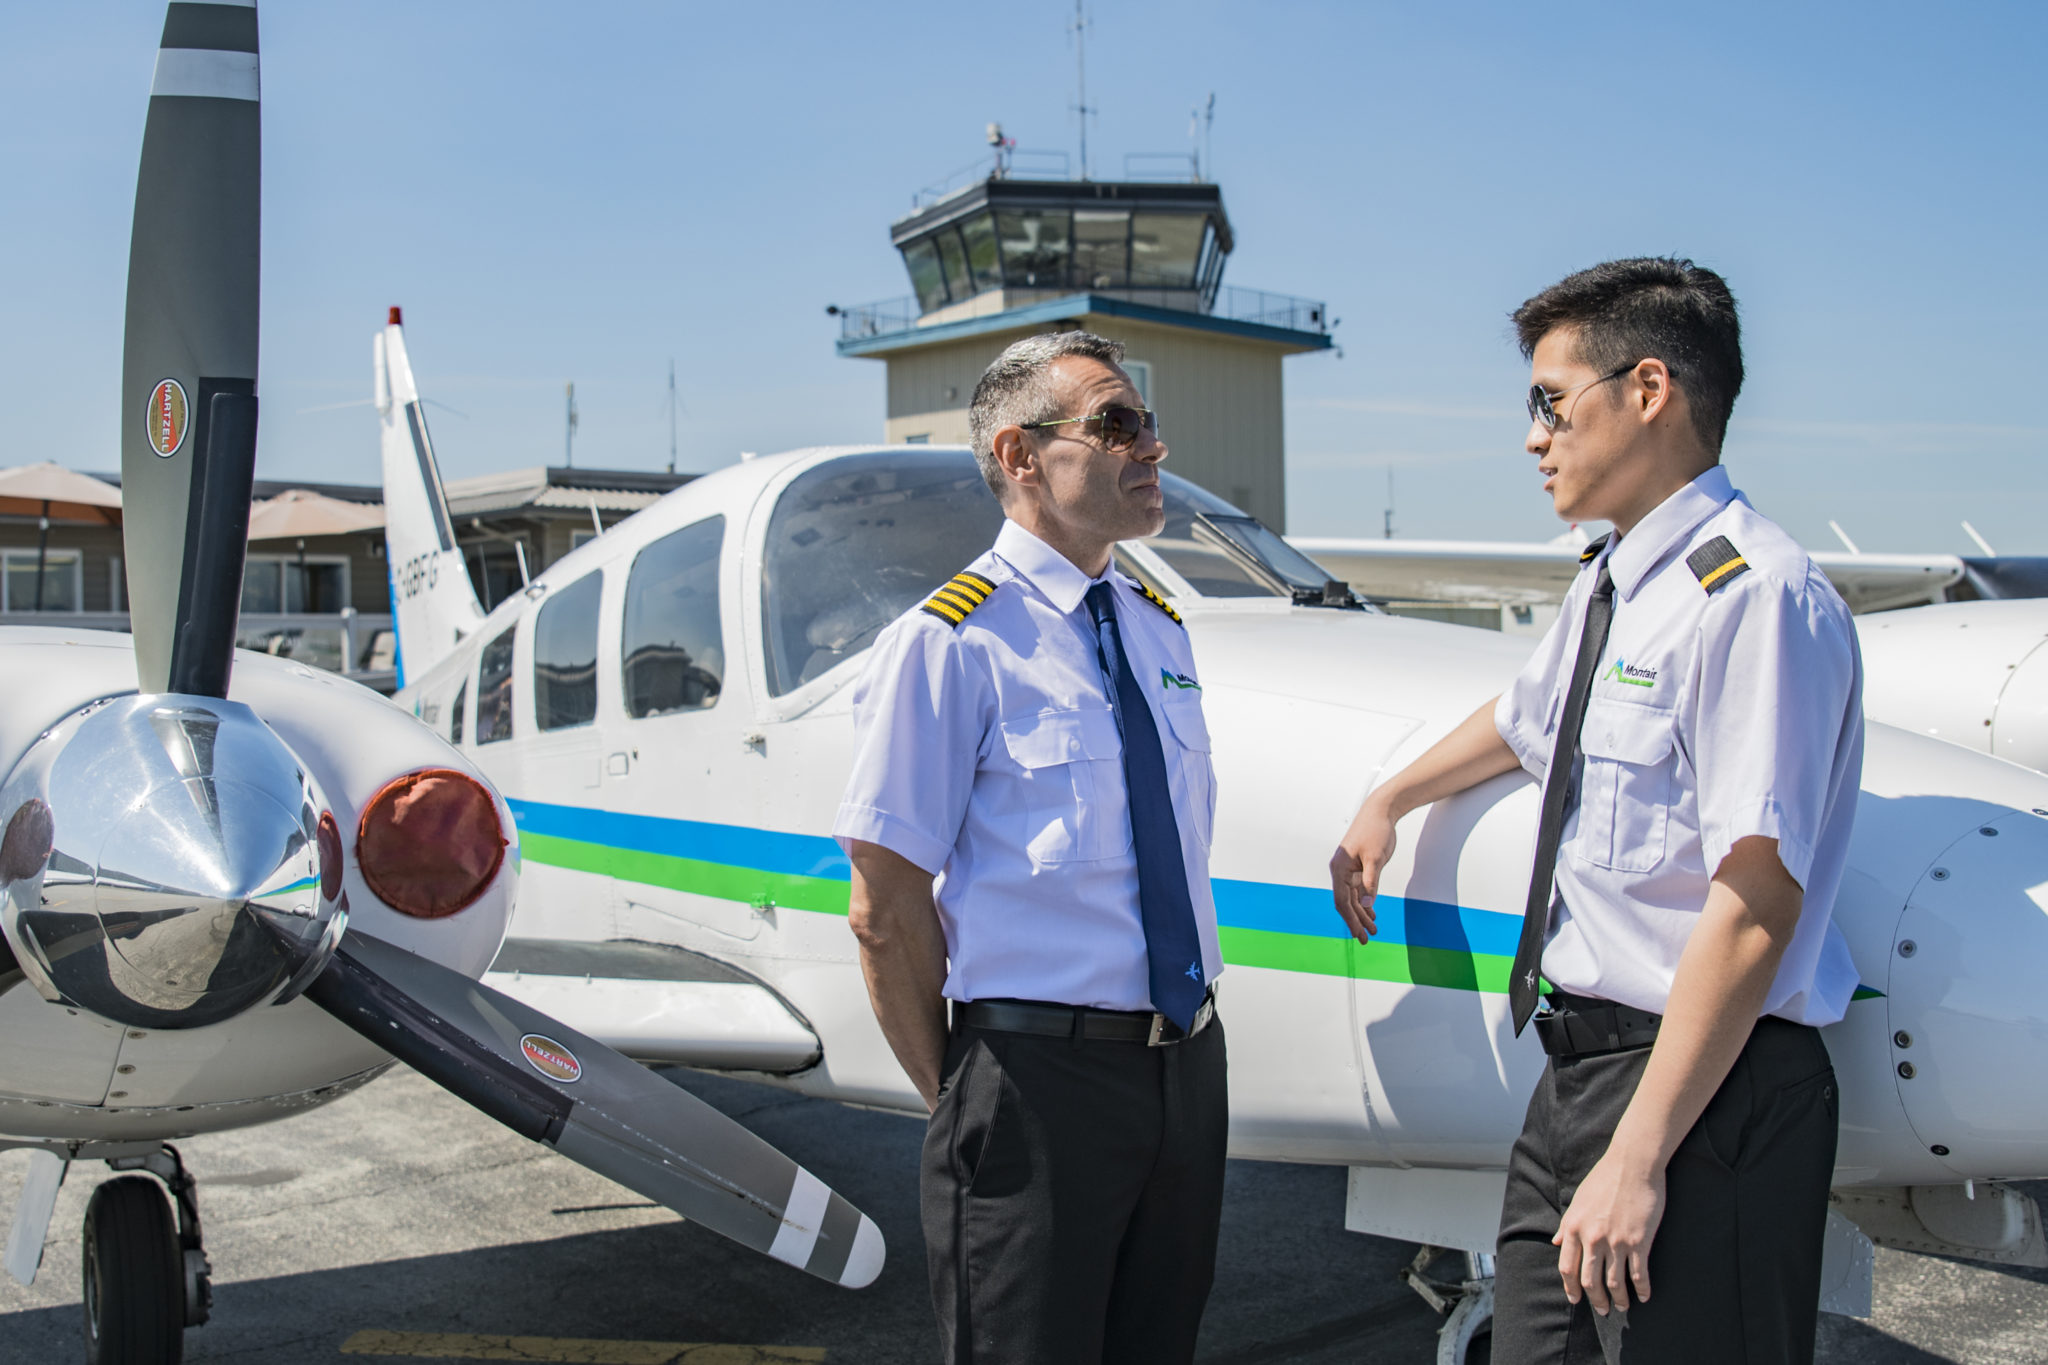 Montair flight instructor with student pilot